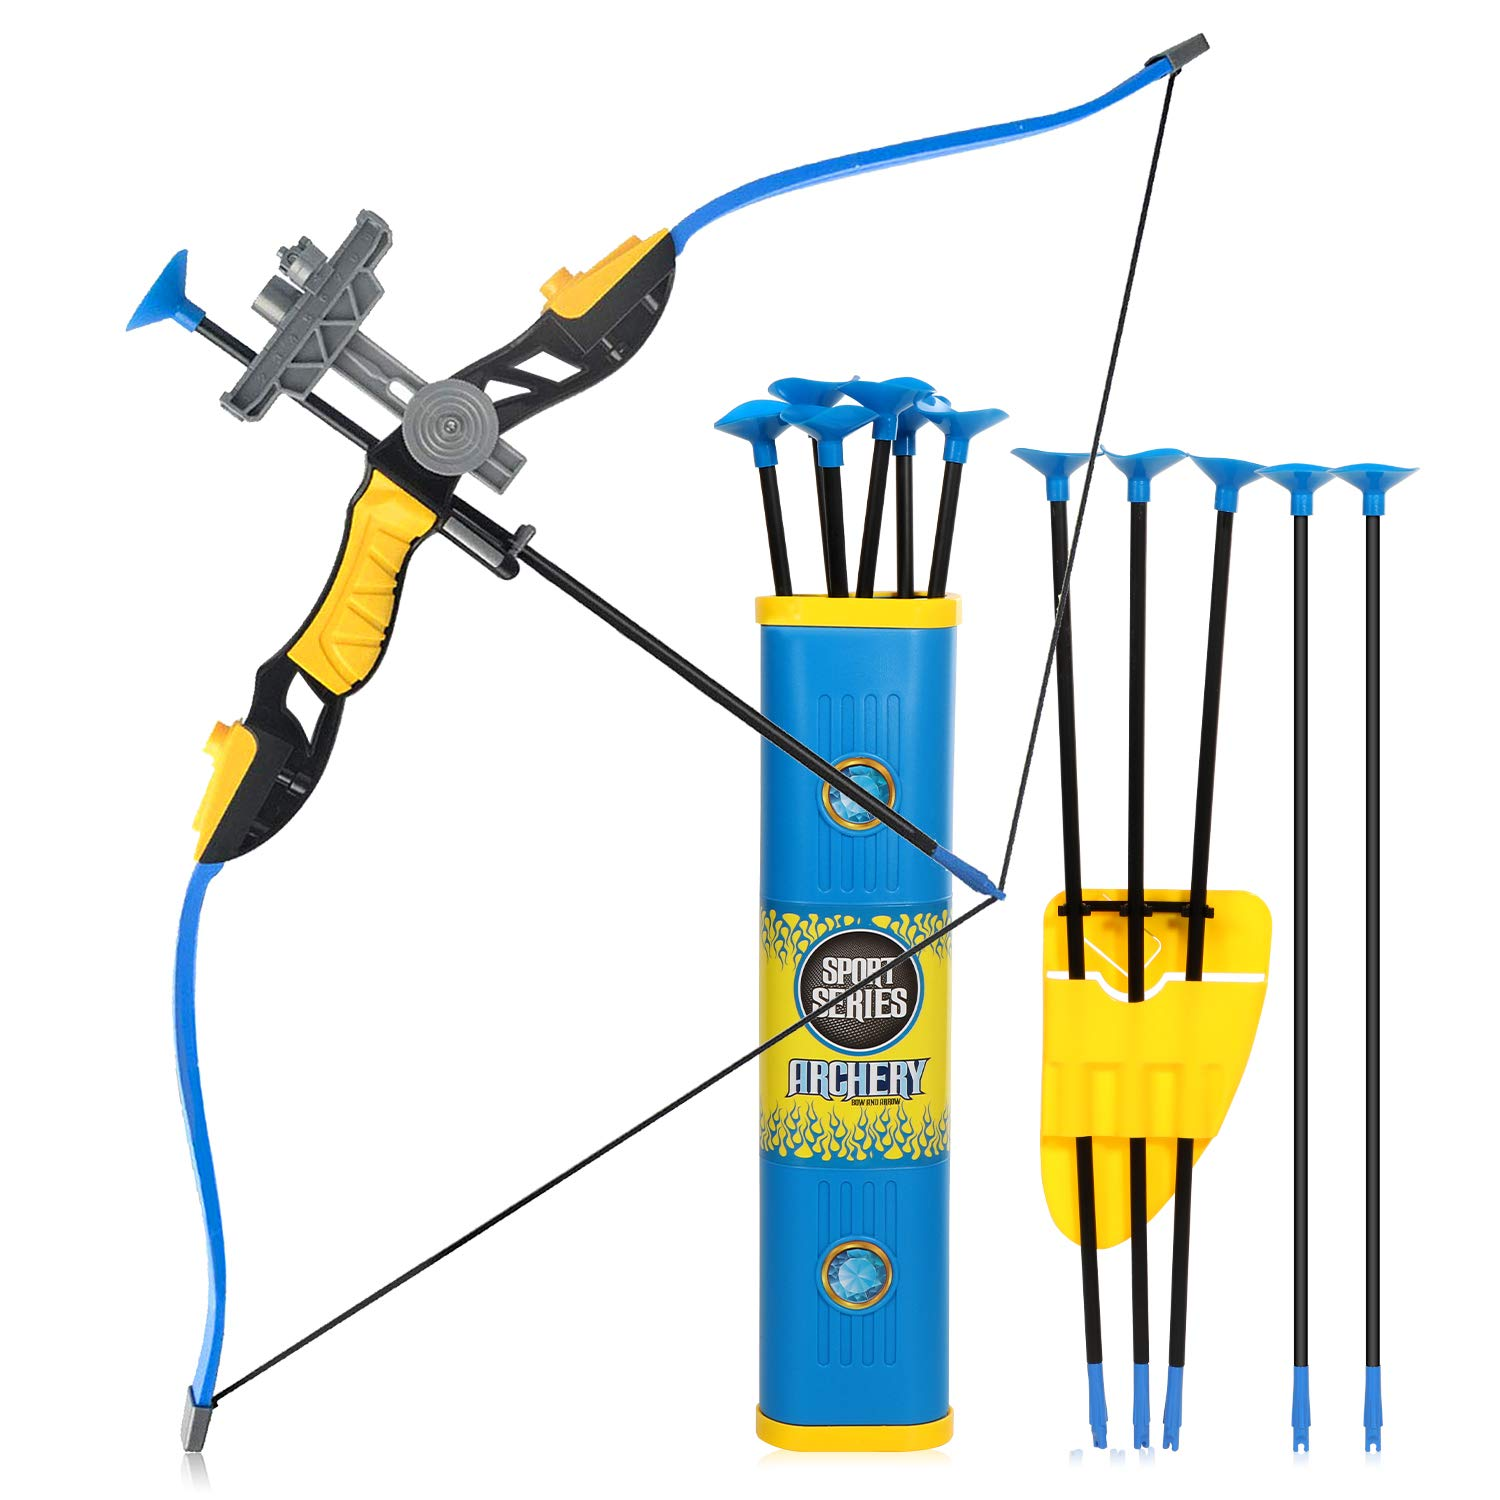 Goldboy Kids Bow and Arrows, Kids Archery Bow and Arrow Toy Set for Boys Girls, Hunting Shooting Bows for Kids, Toy Archery Set Fun Sport Game with 12 Durable Suction Cup Arrows(Blue) by Goldboy